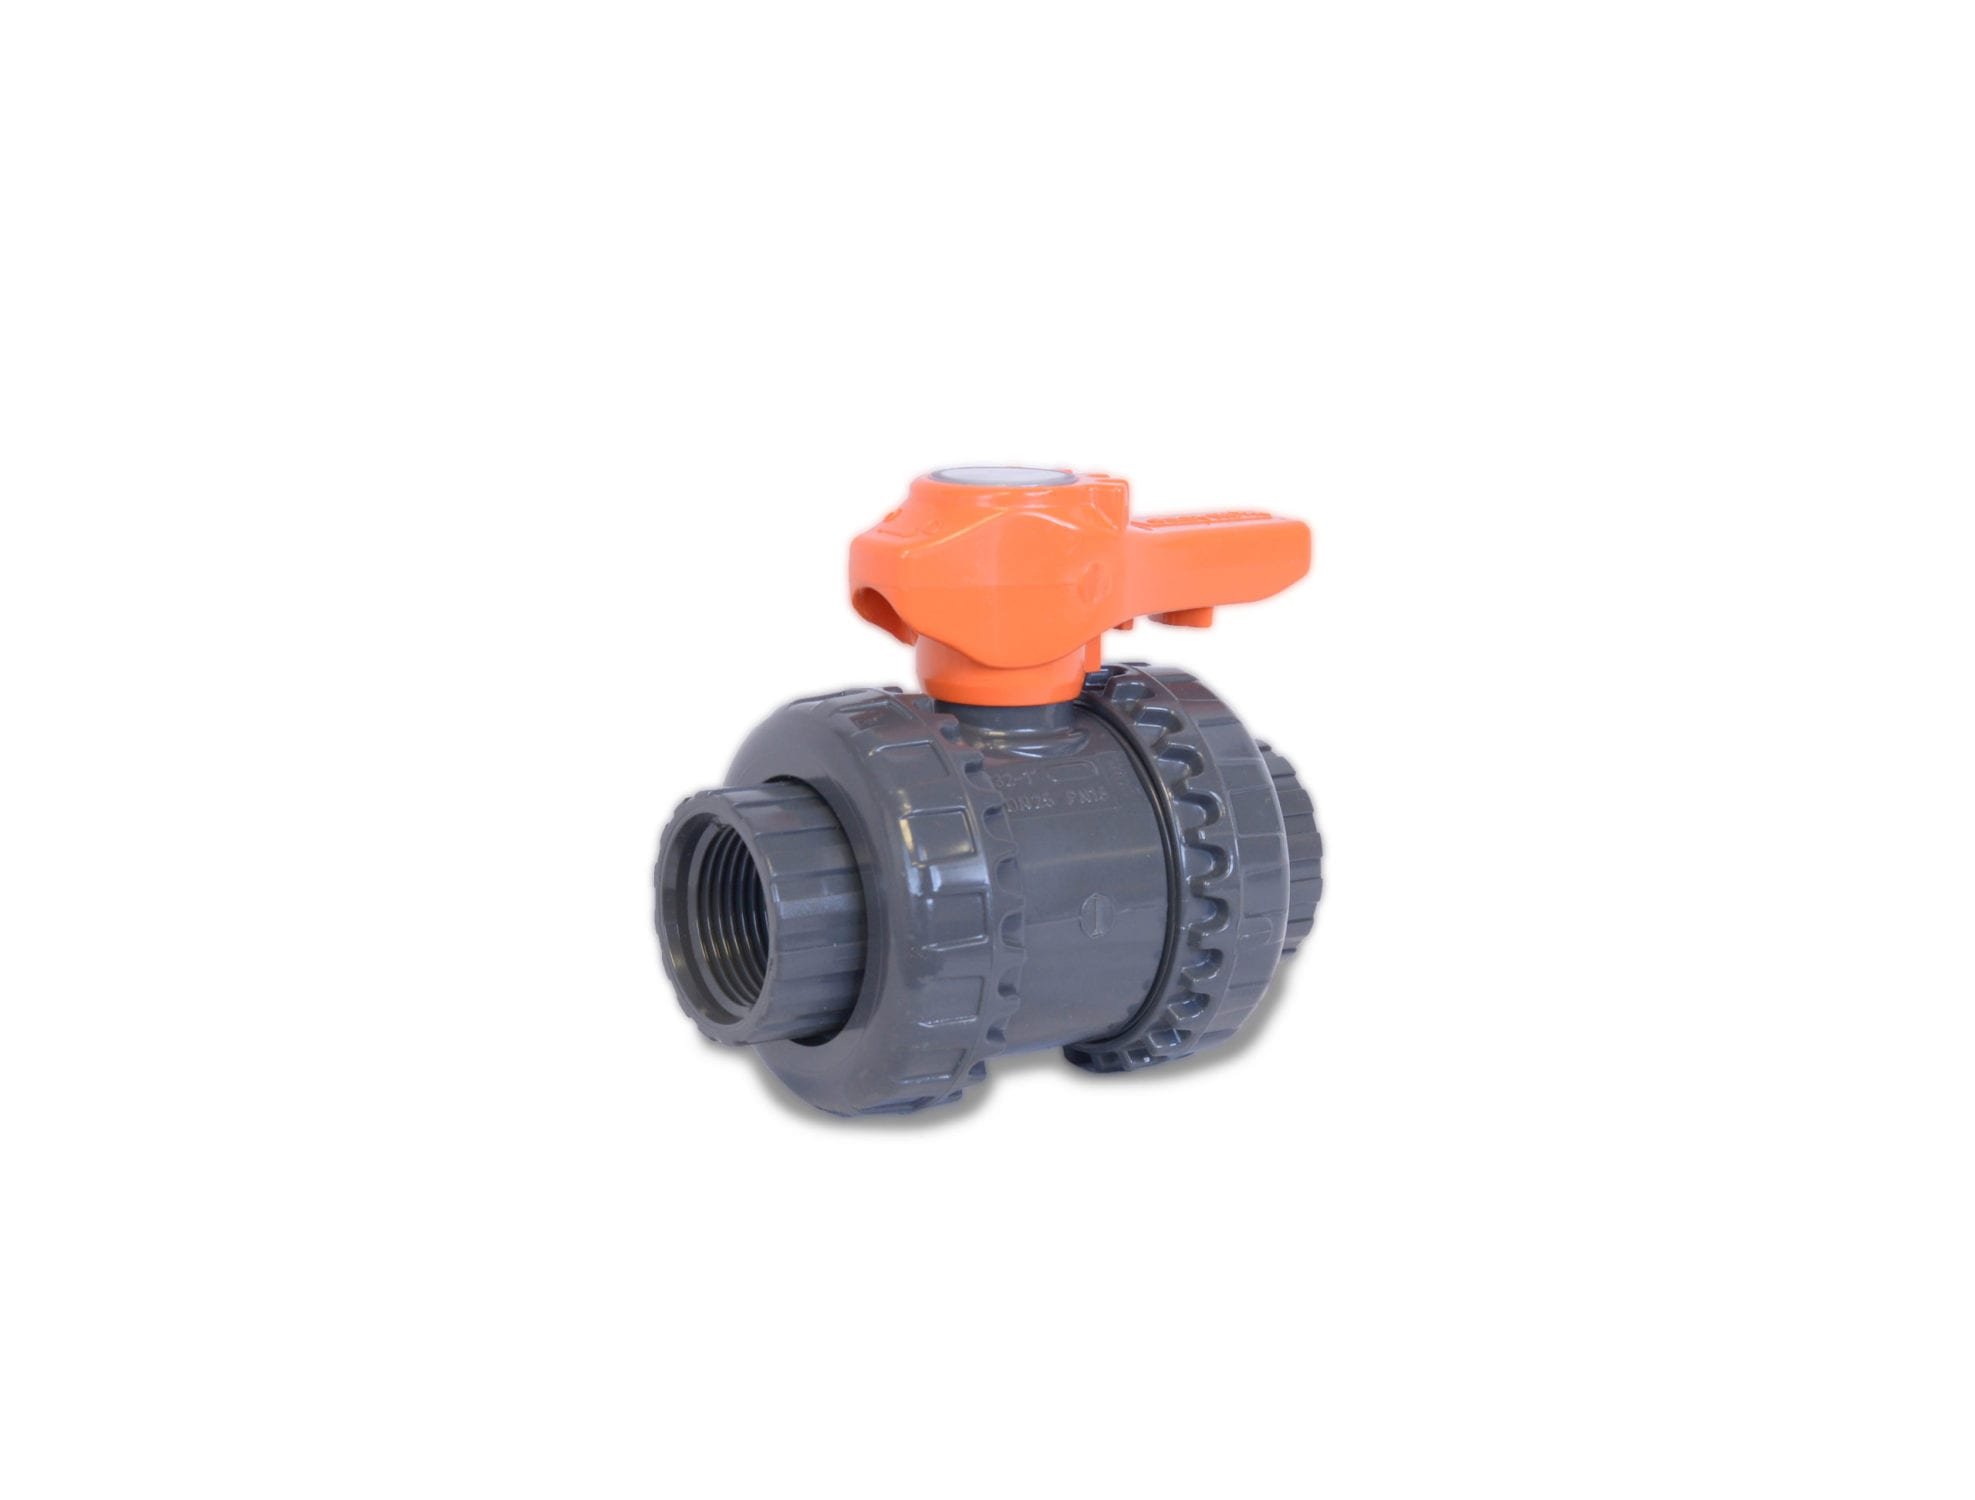 Apex Engineering 1'' Valve for 10MDO or 1'' hose. Image of the valve.